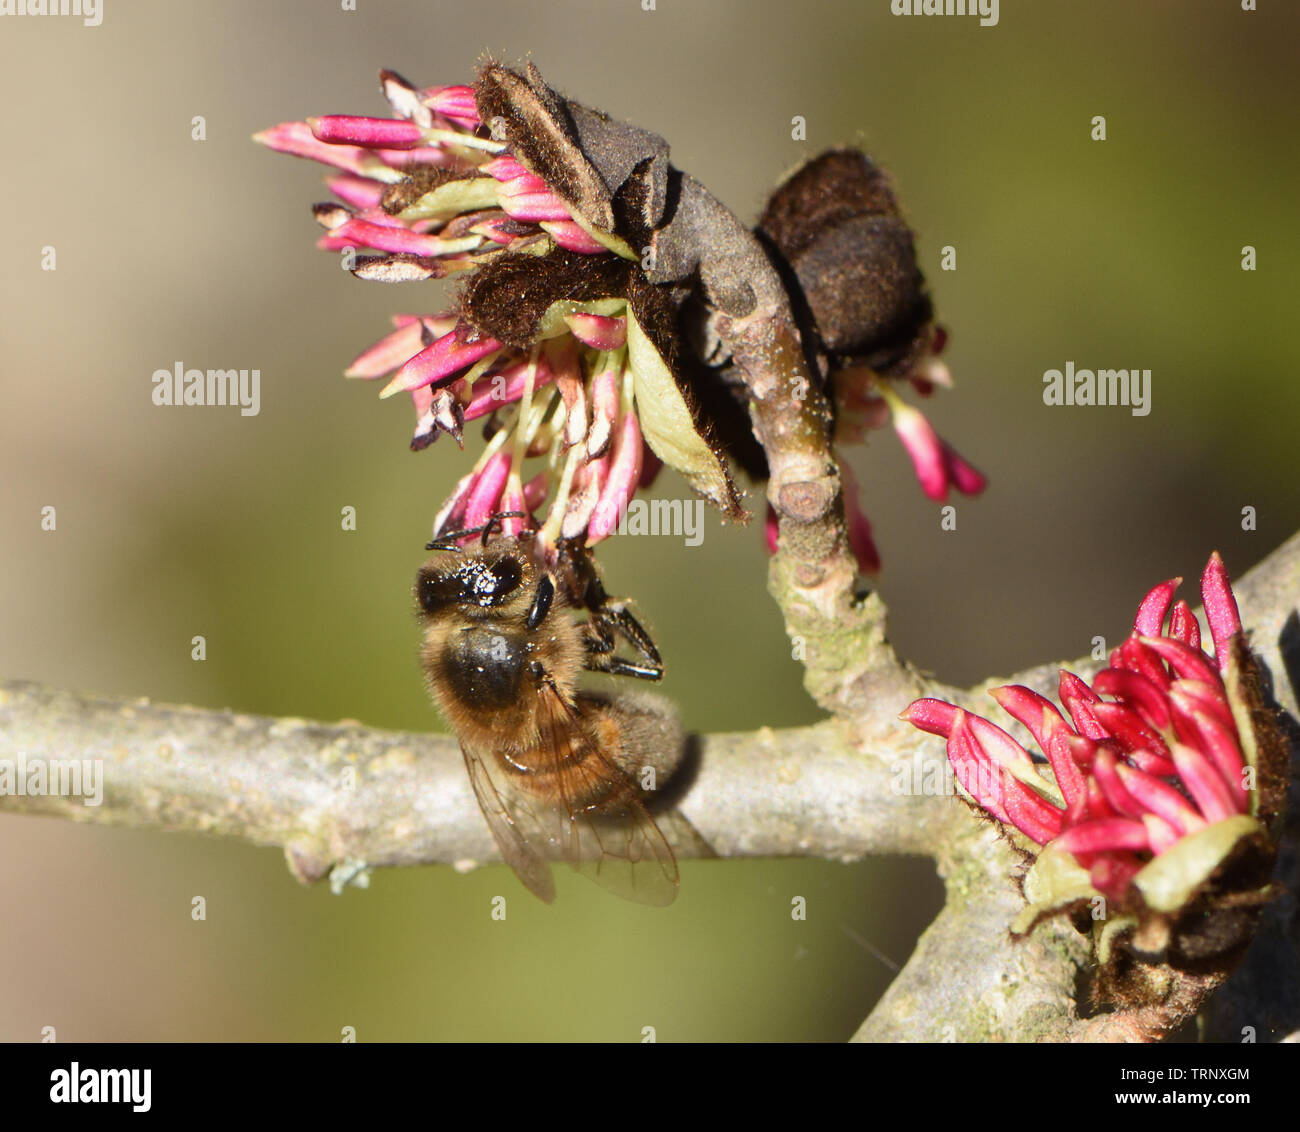 An unseasonably early honey bee (Apis mellifera) in February on Persian ironwood (Parrotia persica) flowers collecting pollen amd nectar from one of t - Stock Image